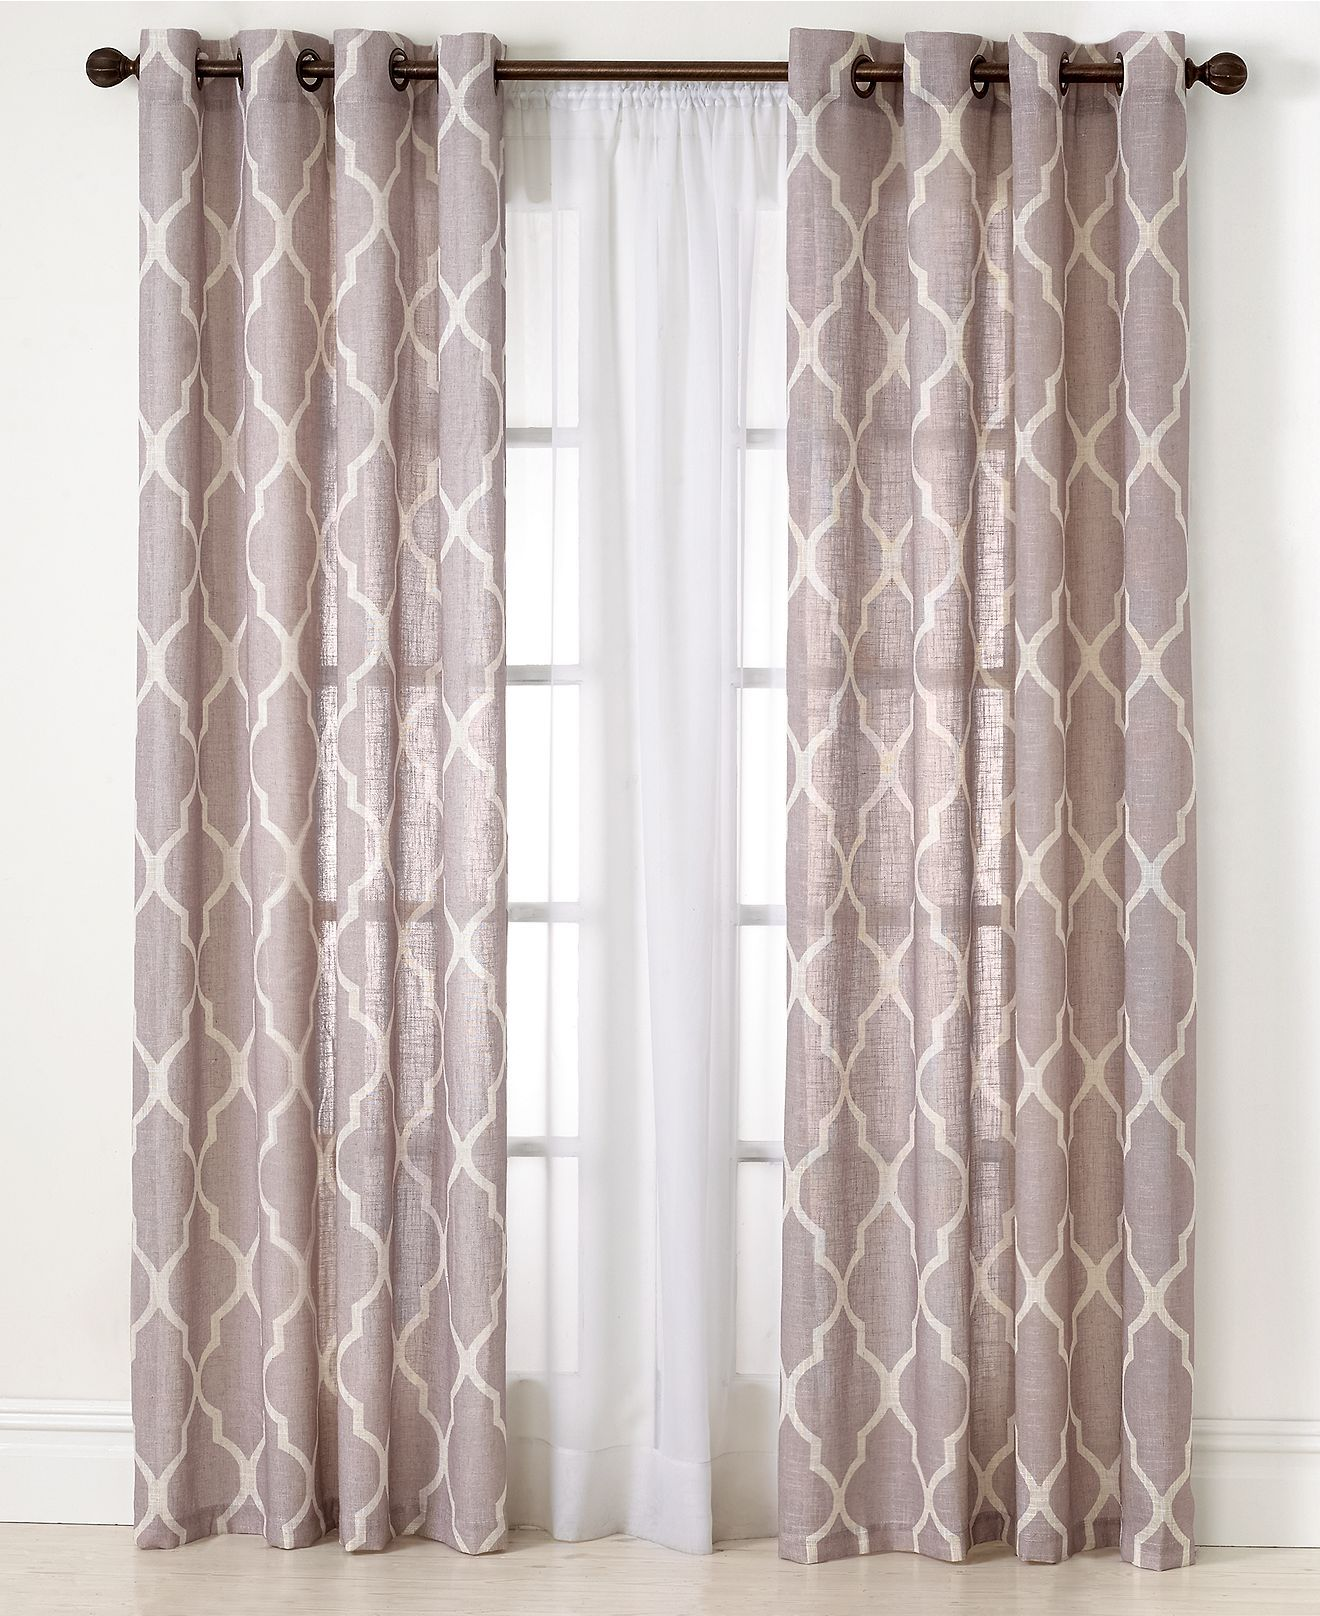 Elrene linen medalia curtain panels window collection and fashion